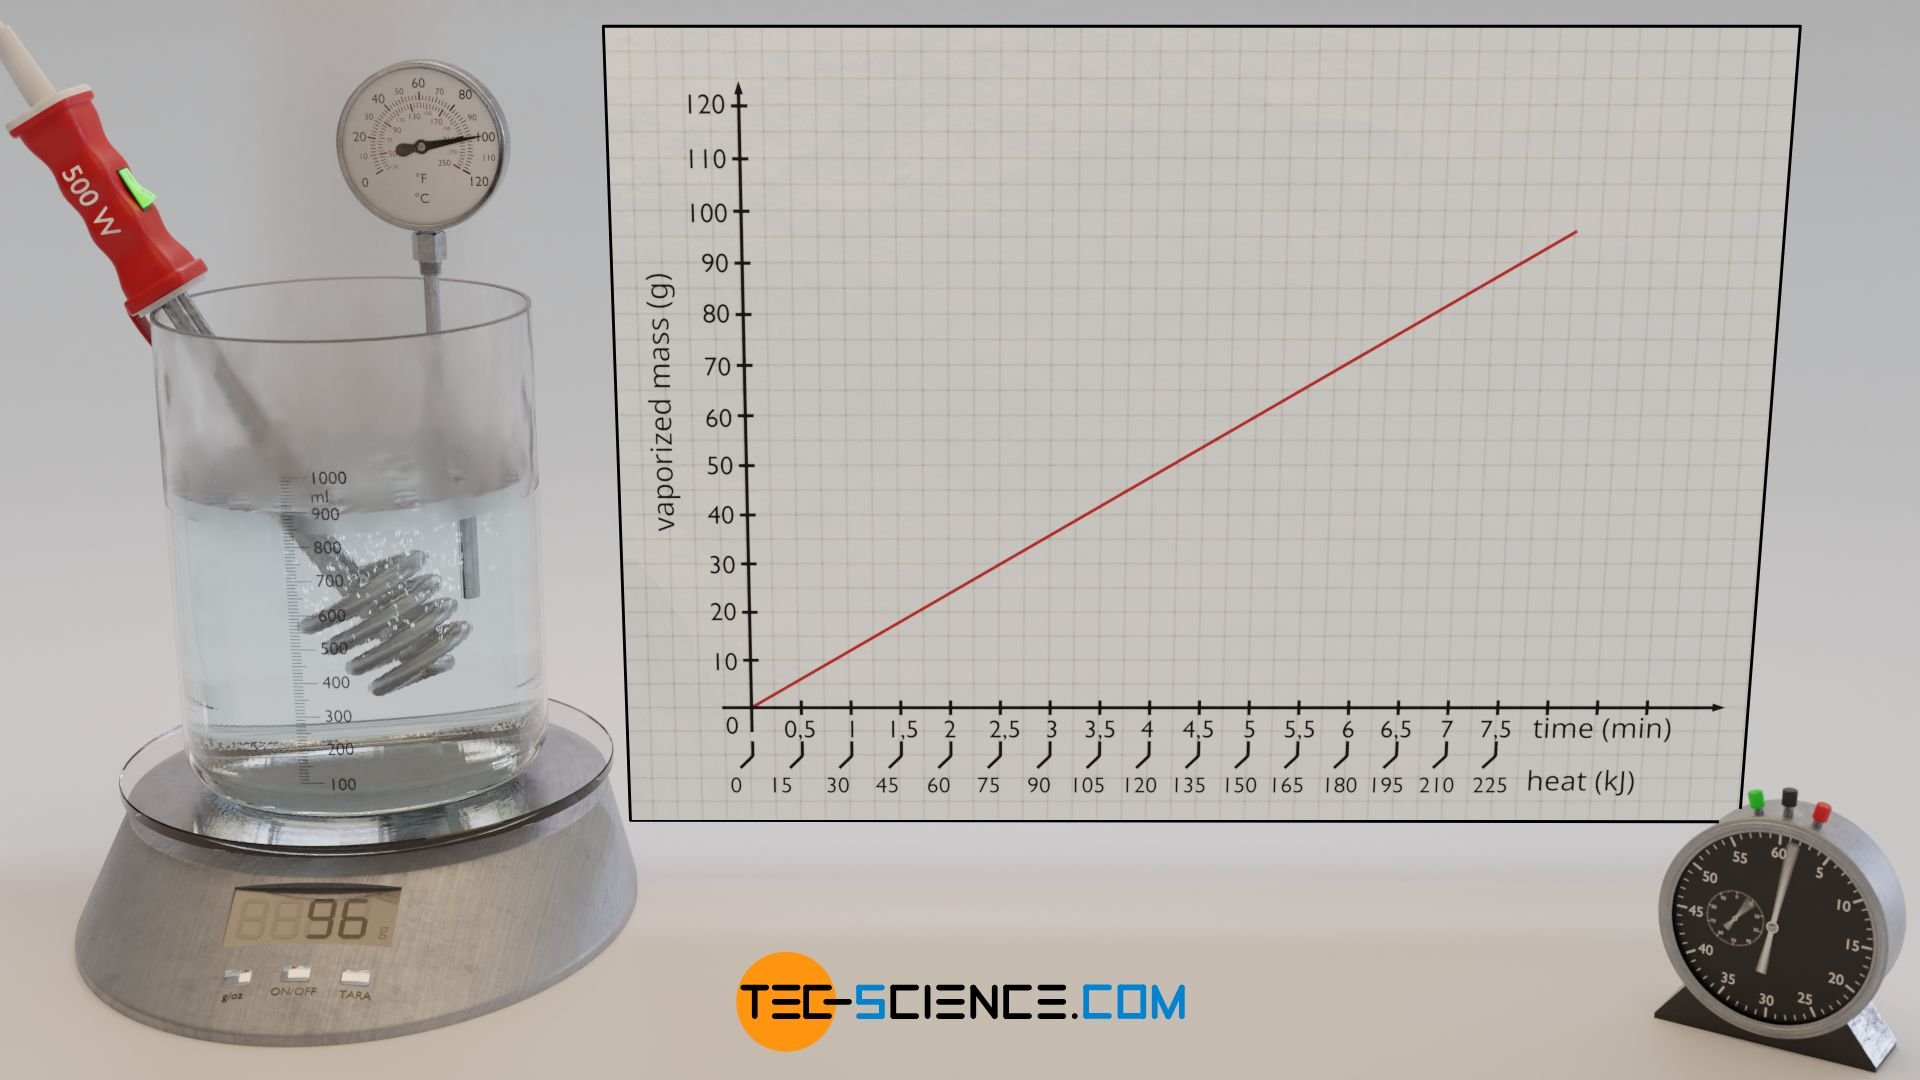 Experiment to determine the specific heat of vaporization (enthalpy of vaporization) of water